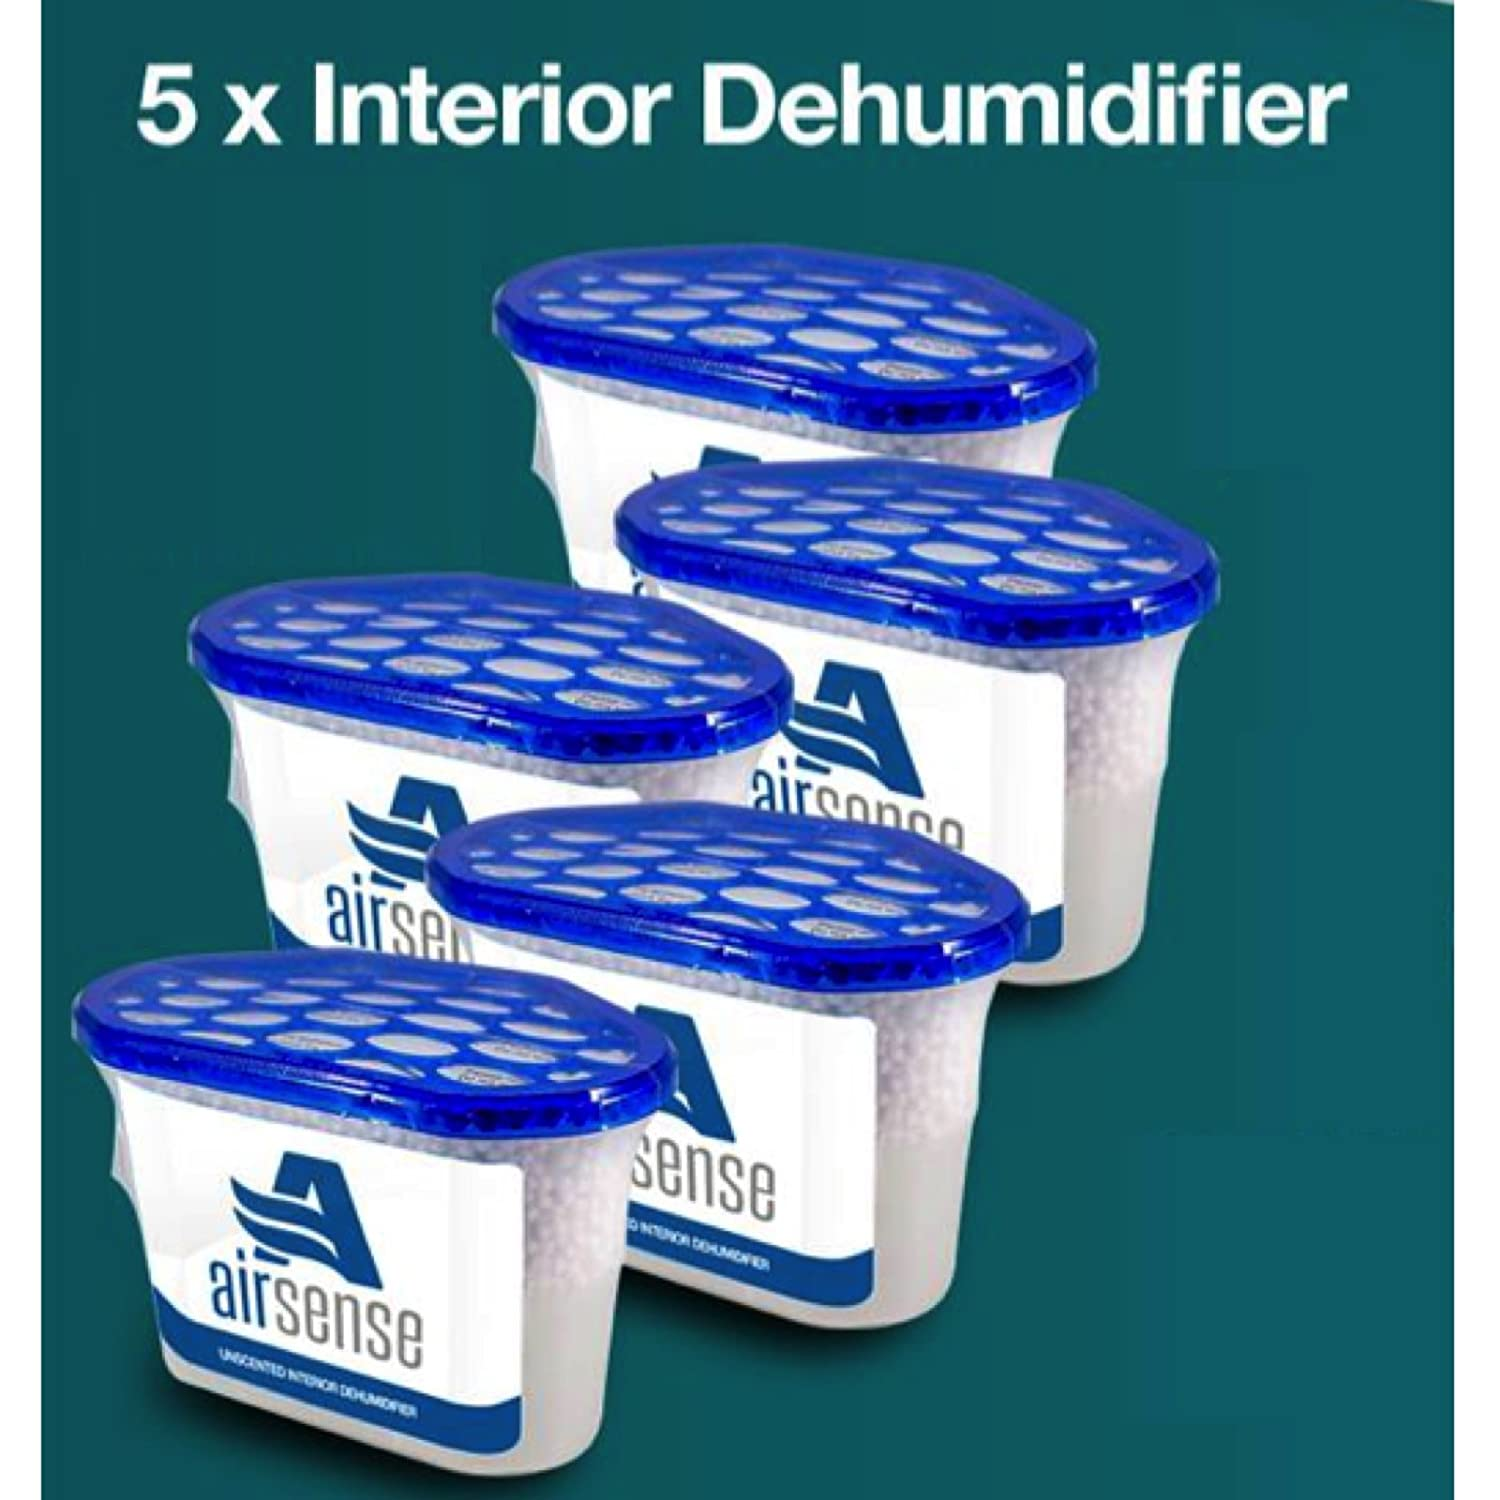 Eueasy Dehumidifier, 500 ml, Pack of 5 Dehumidifiers, Moisture Absorber, Damp, Mould Mildew, Condensation Airsense